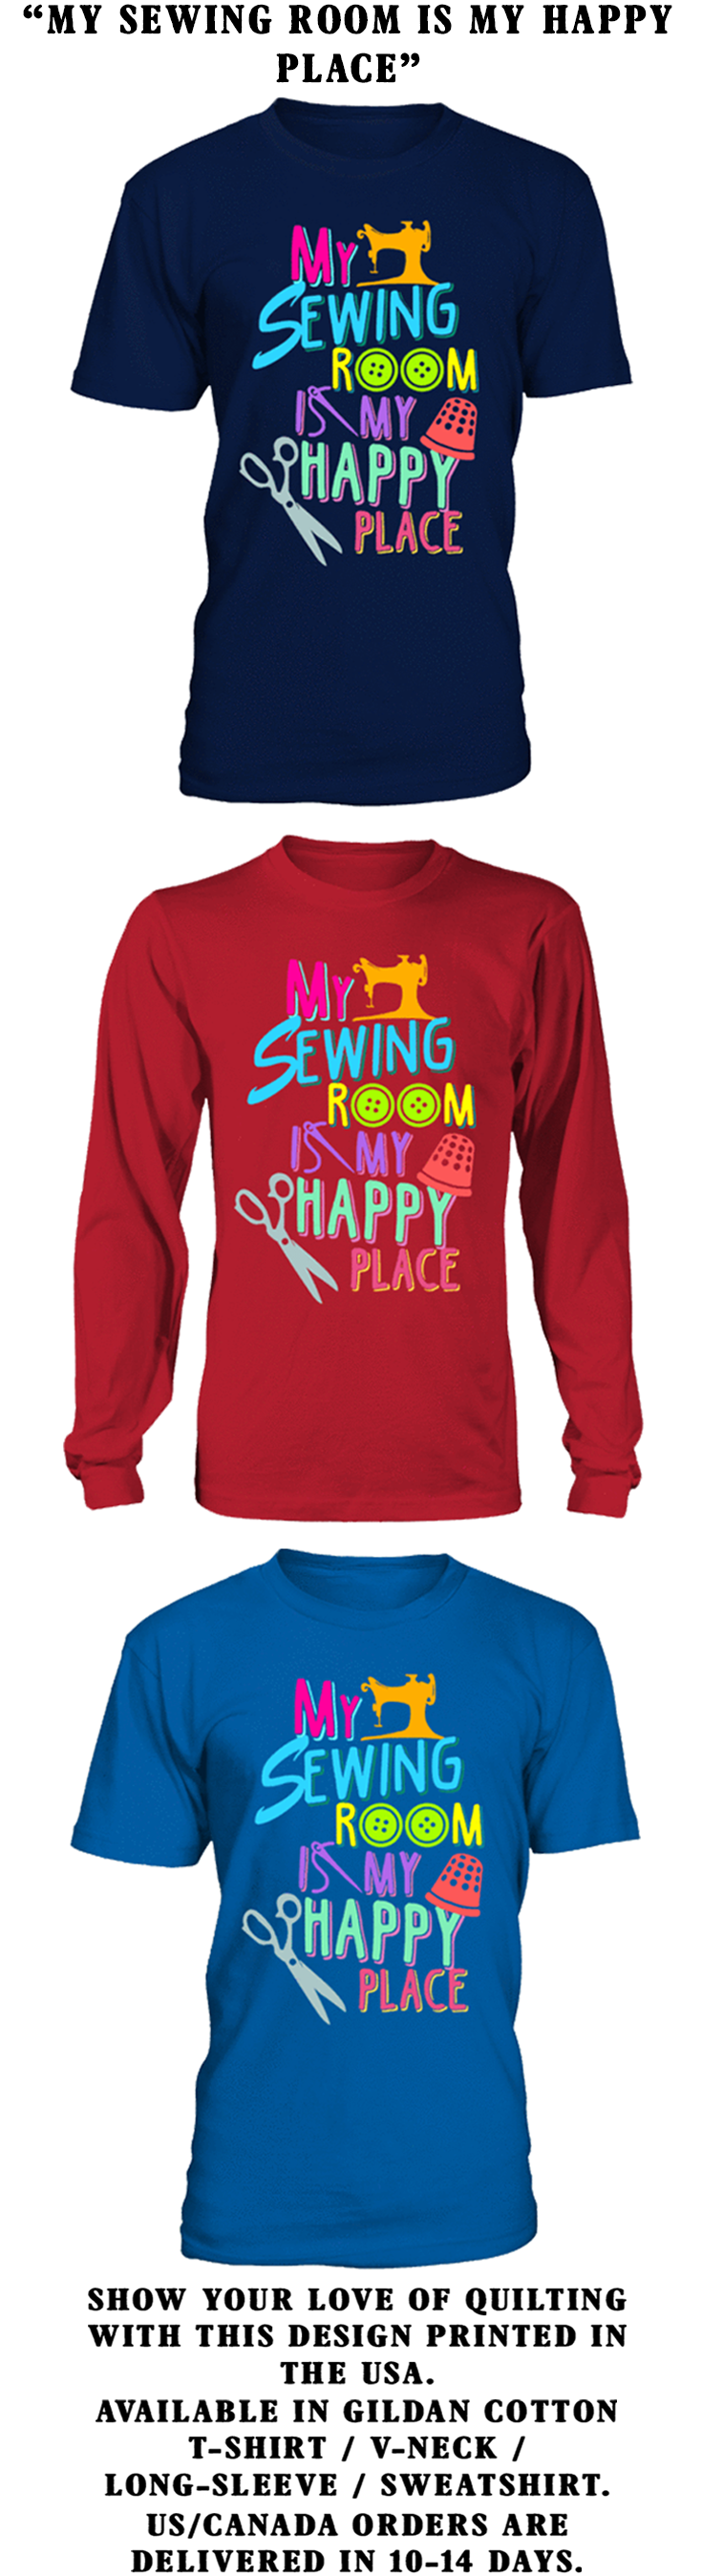 My Sewing Room Is My Happy Place...  Show your love of Quilting with this design printed in the USA.  Available in Gildan Cotton T-Shirt / Long-Sleeve / Sweatshirt.   US/Canada orders are delivered in 10-14 days.